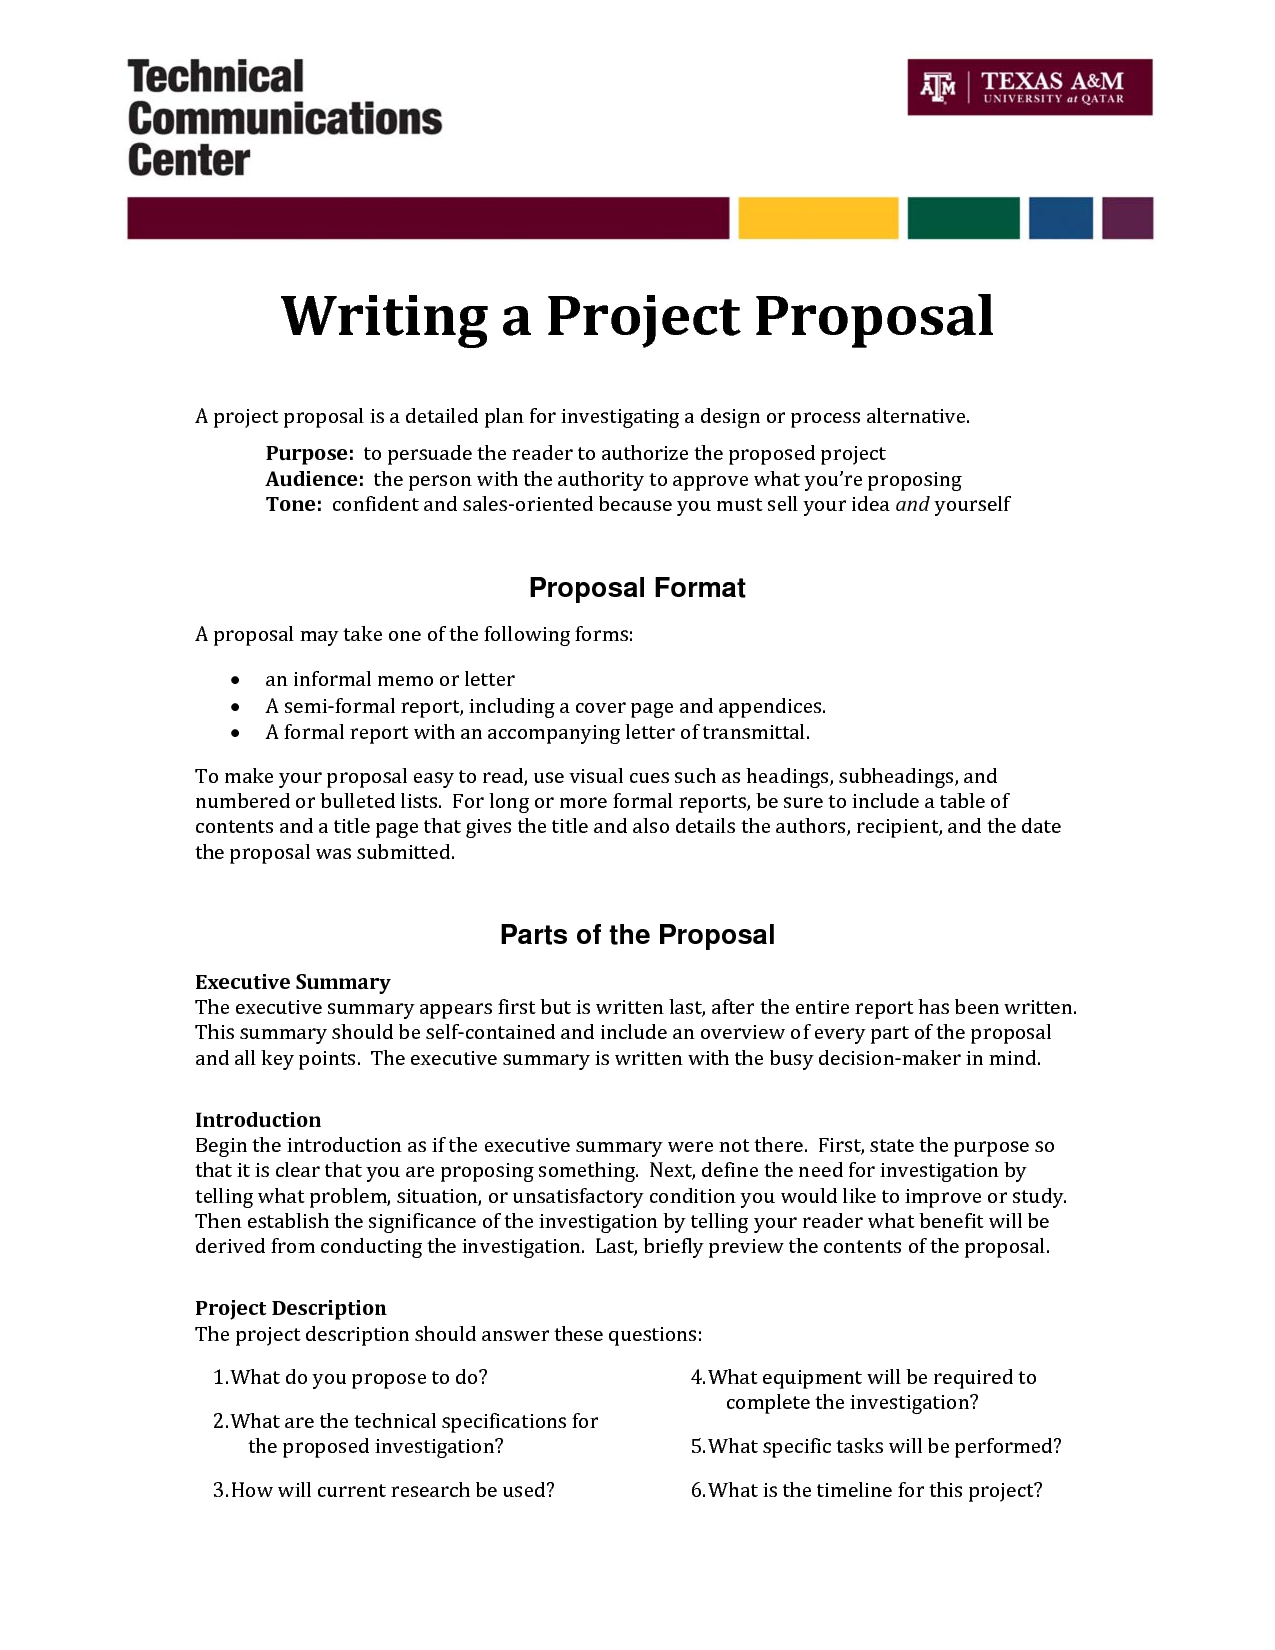 informal proposal letter example Writing a Project